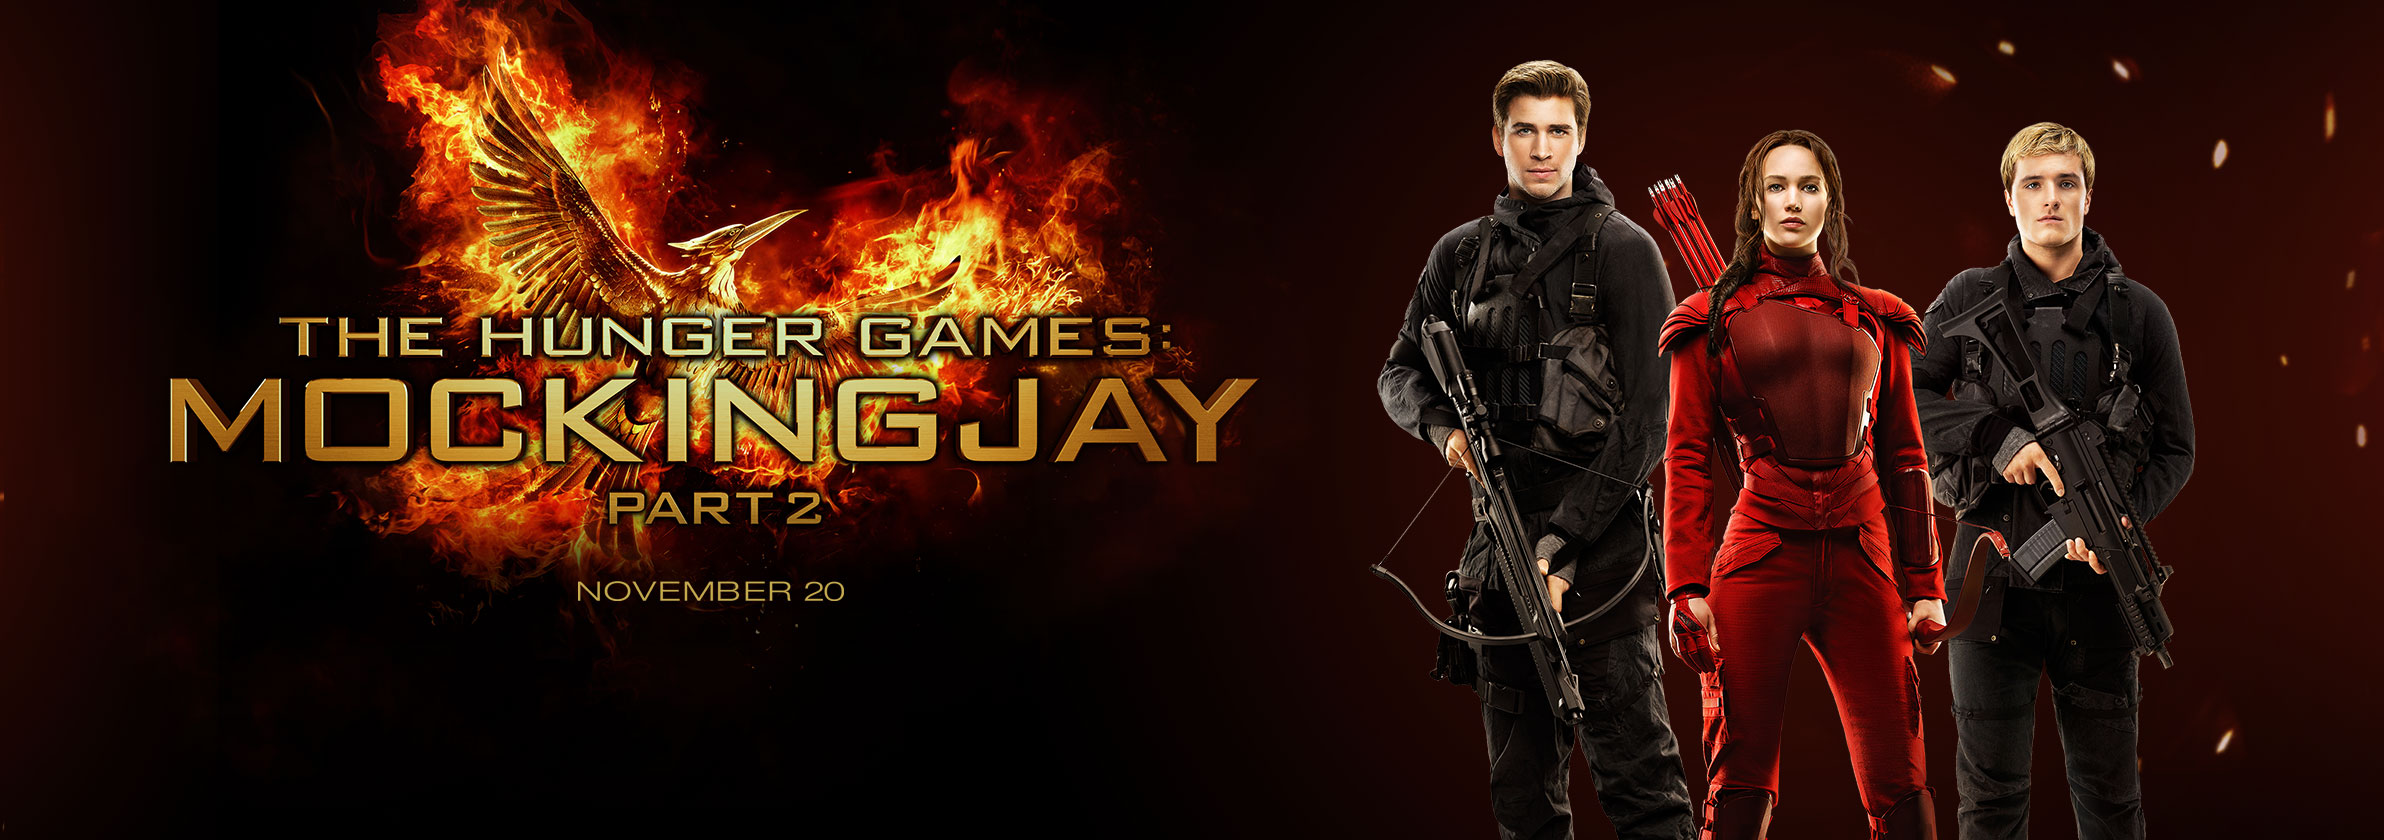 Mockingjay Pt 2 The Hunger Games Wallpaper 38904870 Fanpop